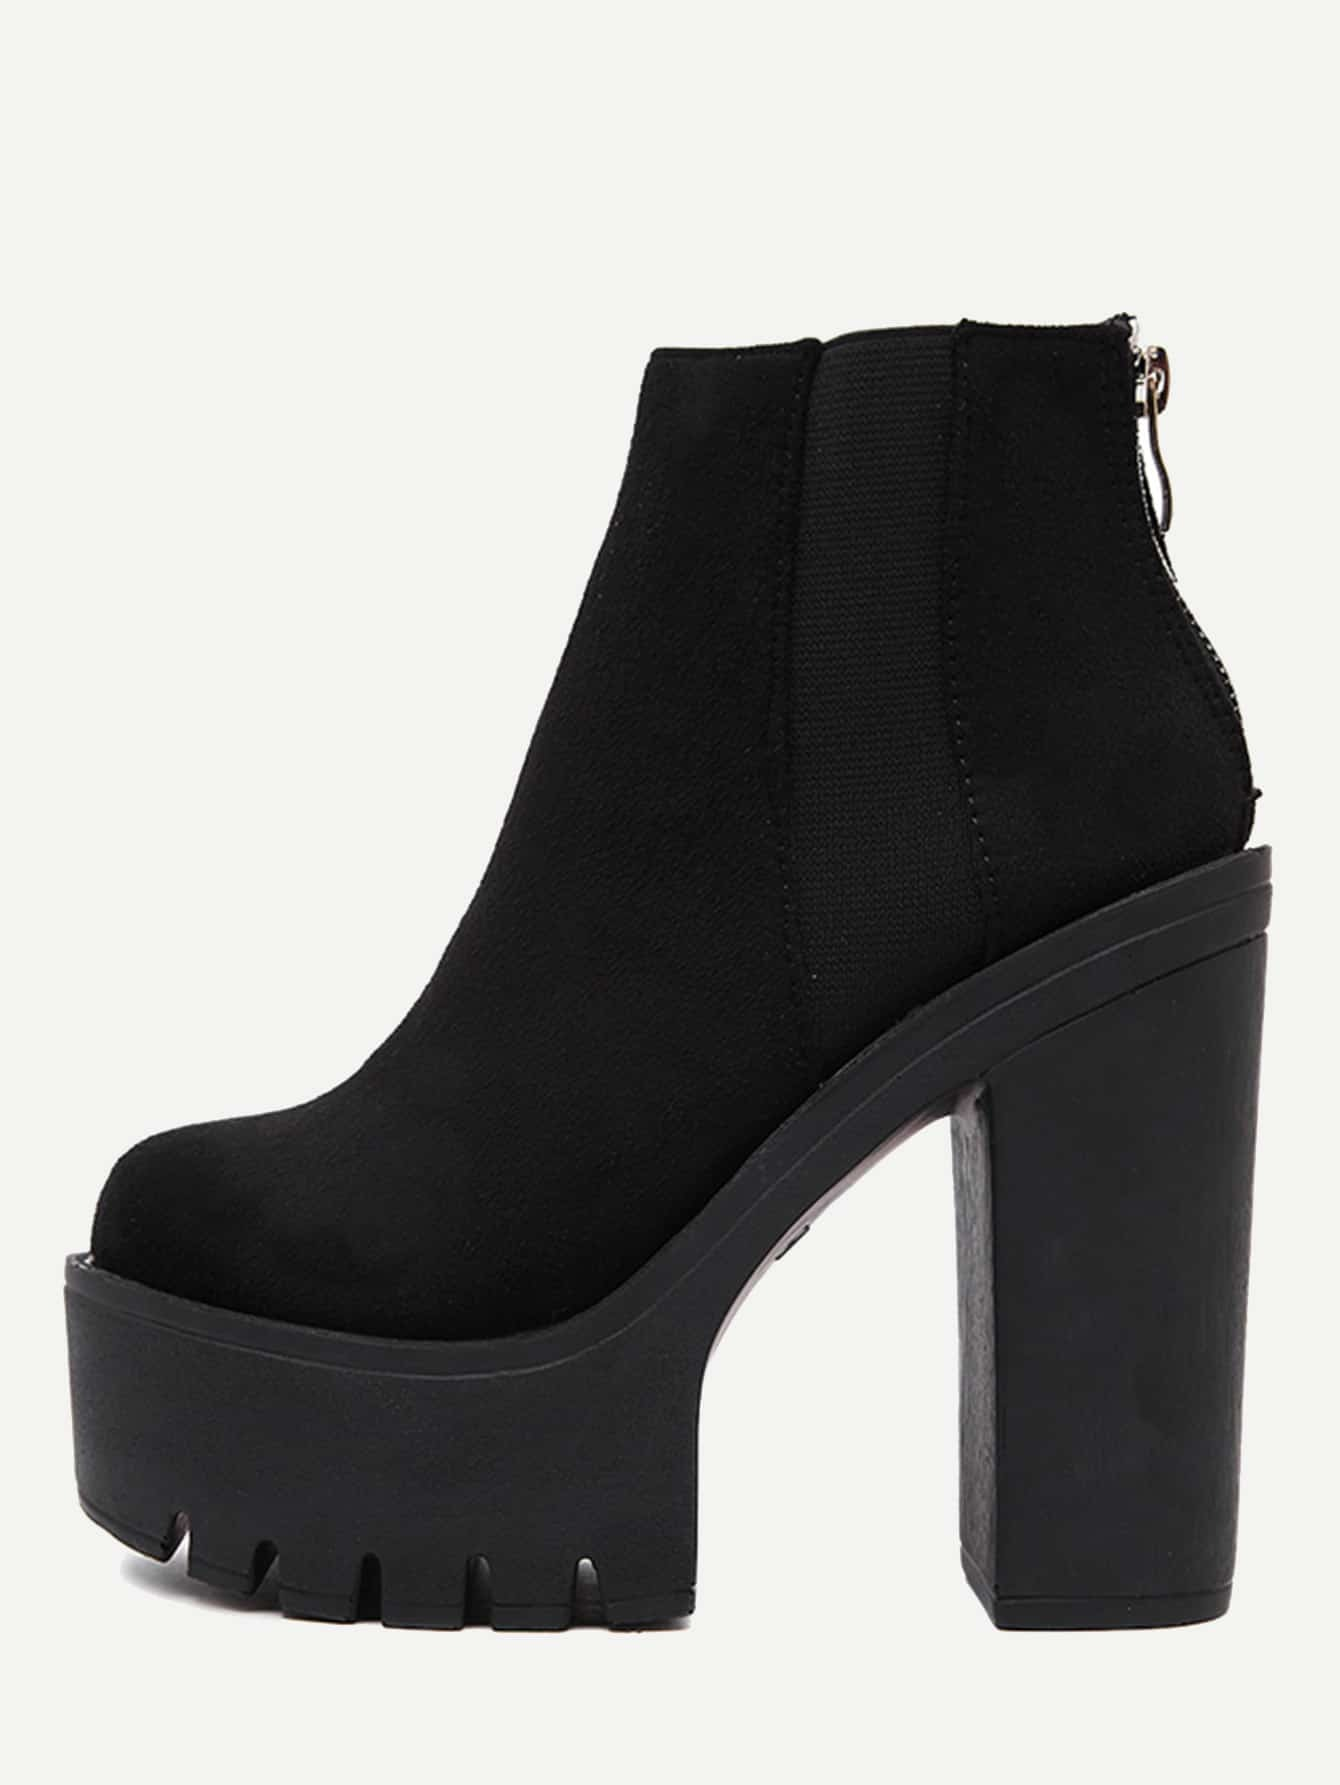 Black Suede Zipper Back Ankle Boots shoes160818803